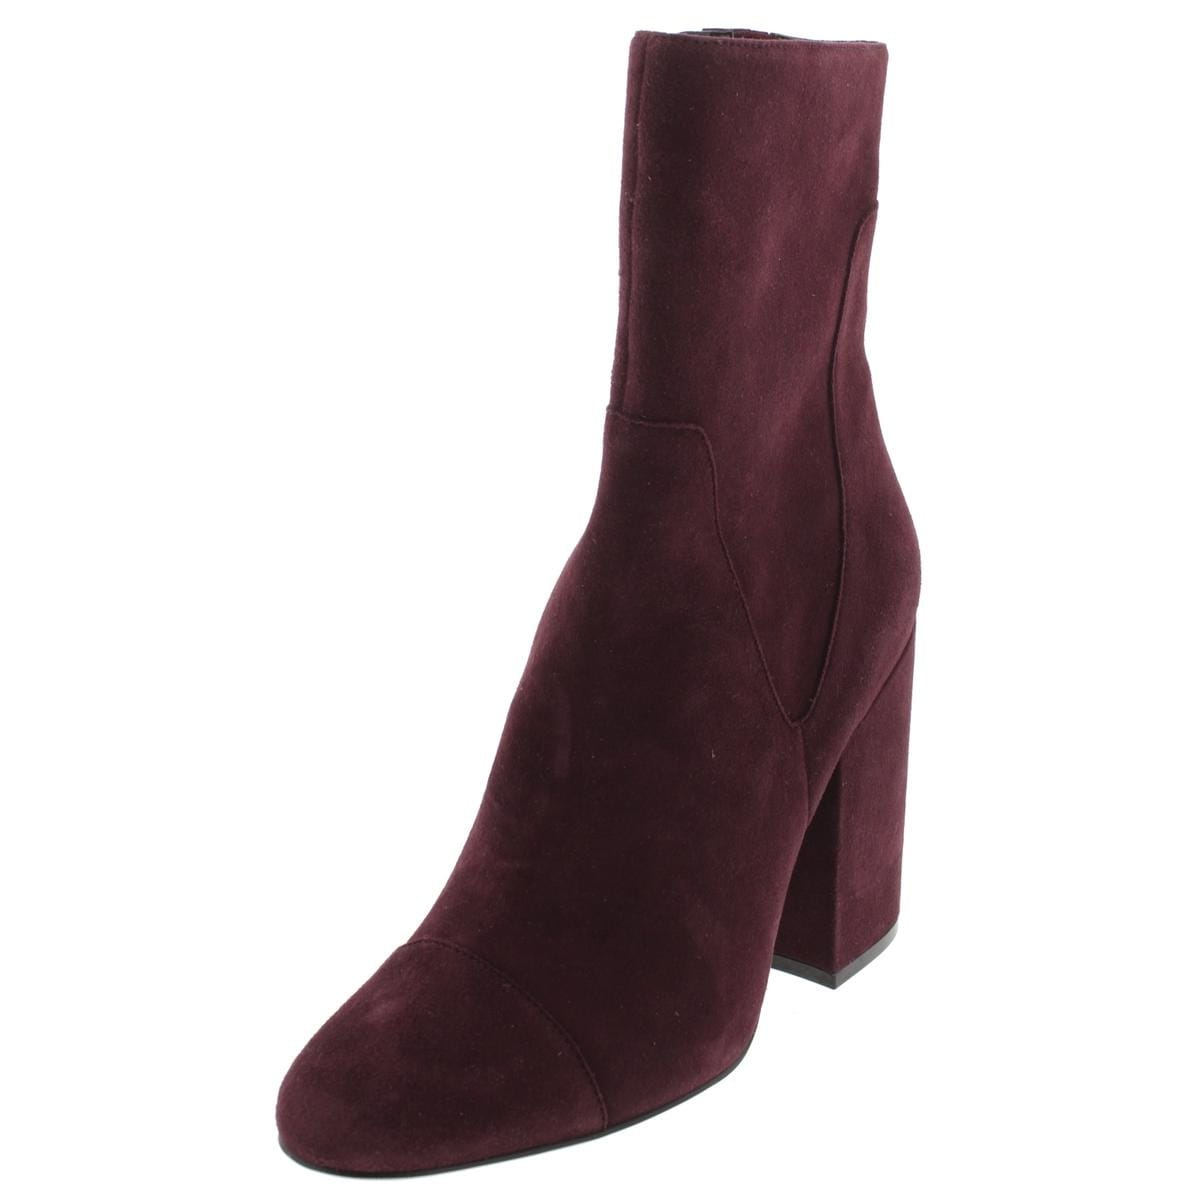 2087eb6cdd325 Shop Kendall + Kylie Womens Brooke Mid-Calf Boots Suede Block Heel - Free  Shipping On Orders Over $45 - Overstock - 16772616